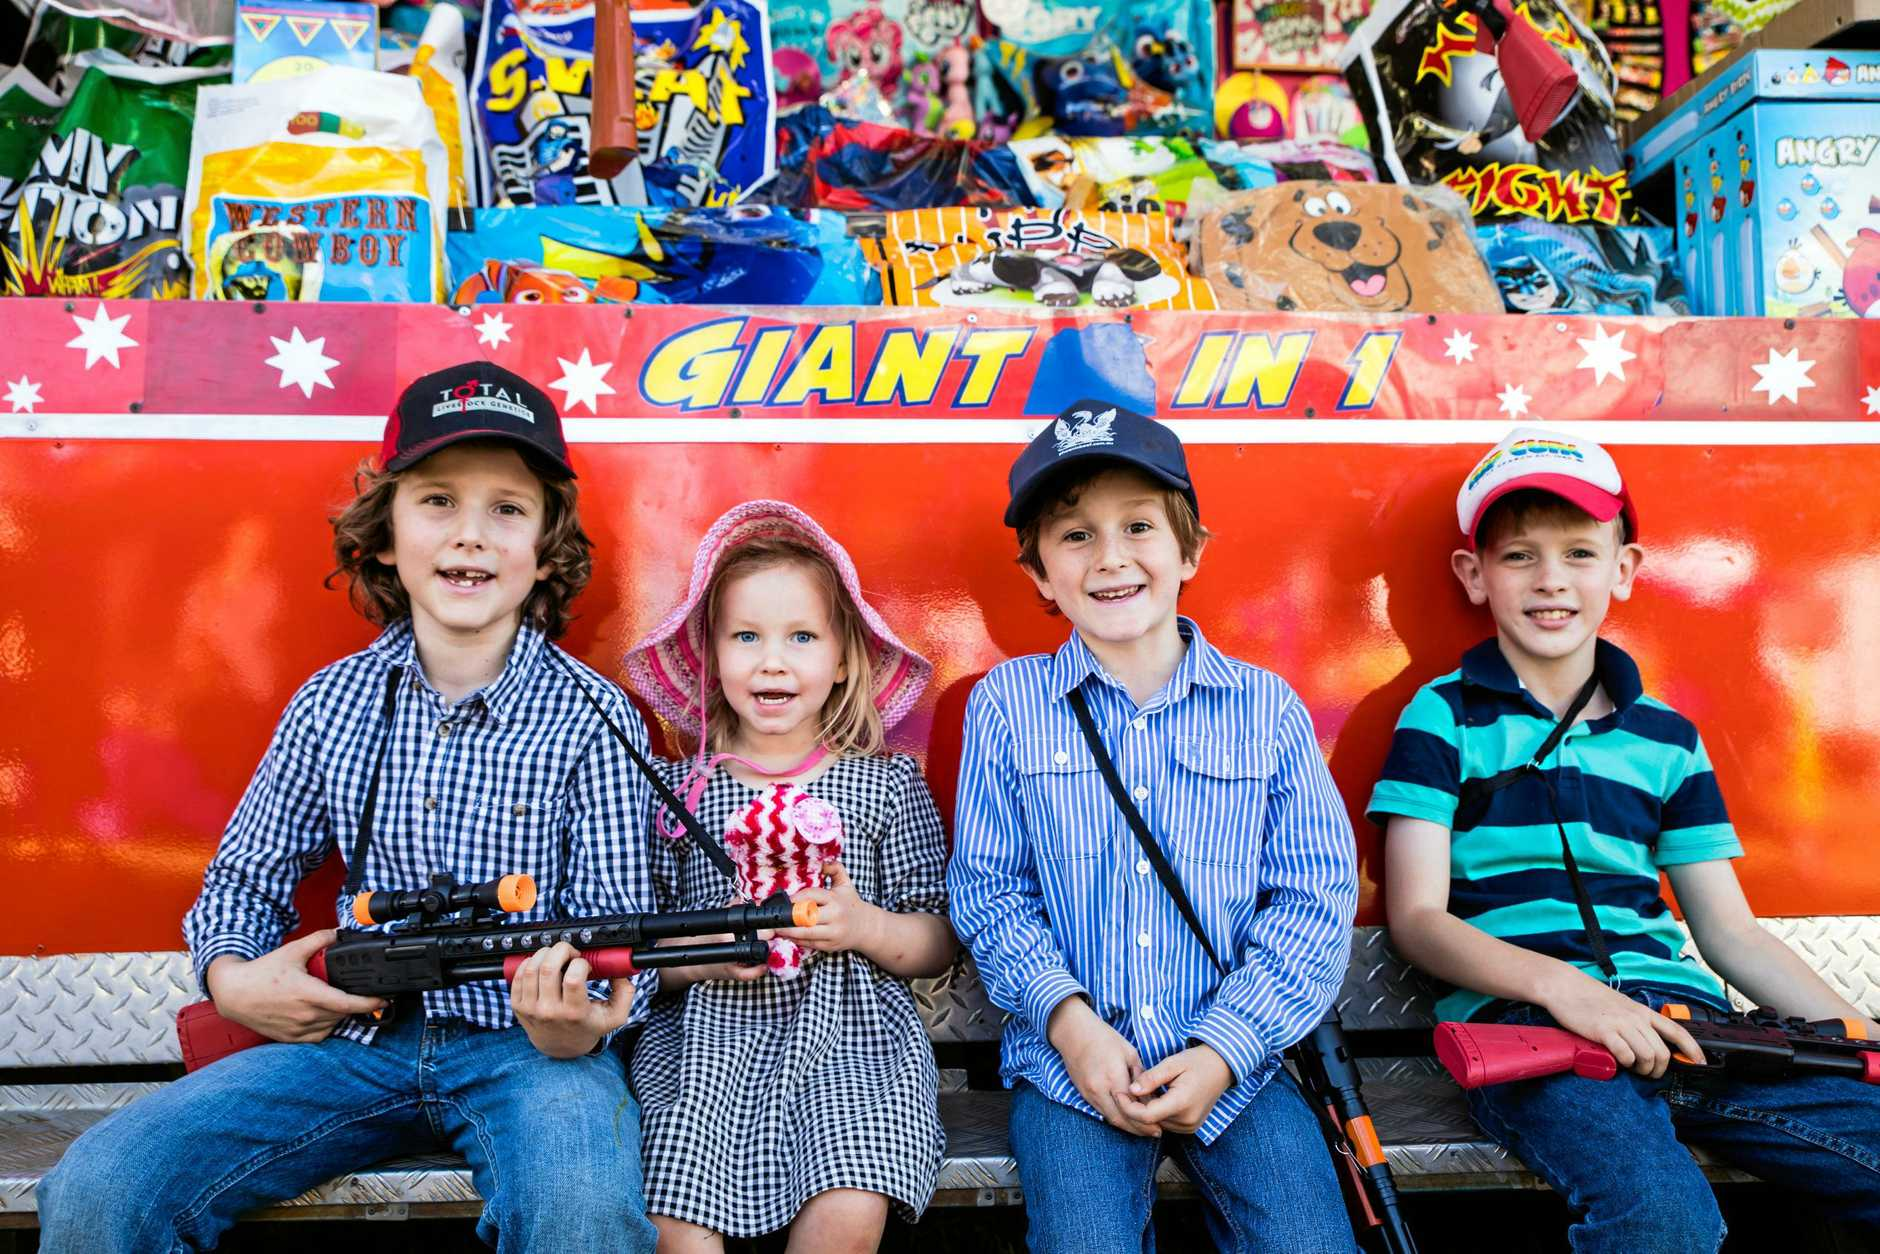 The region's show fun comes to a close today with People's Day at Mackay Show.